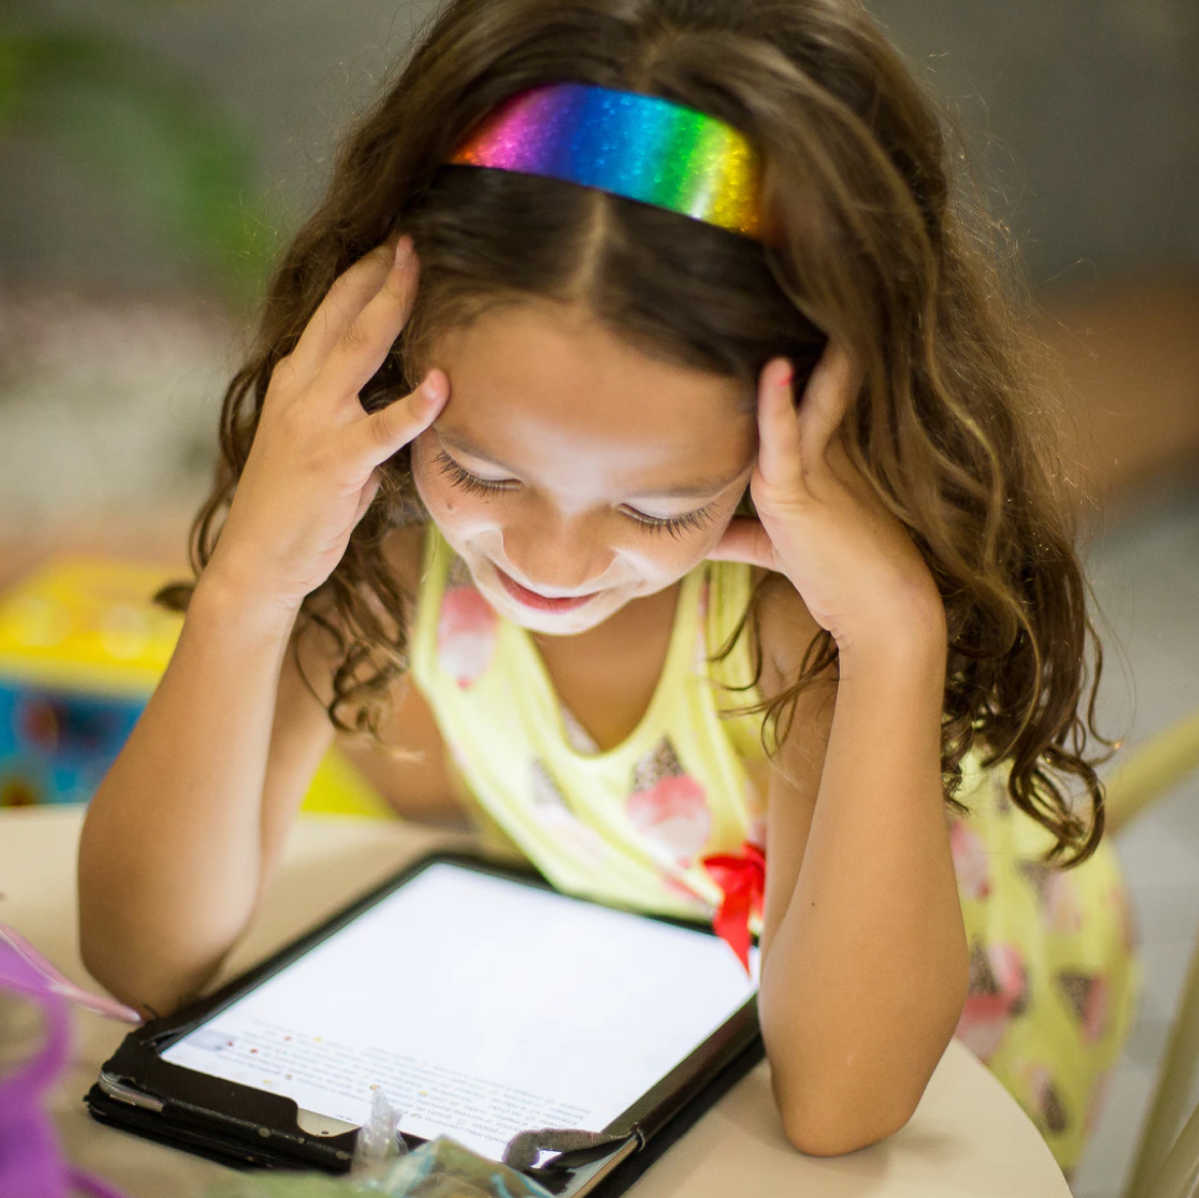 girl reading from tablet